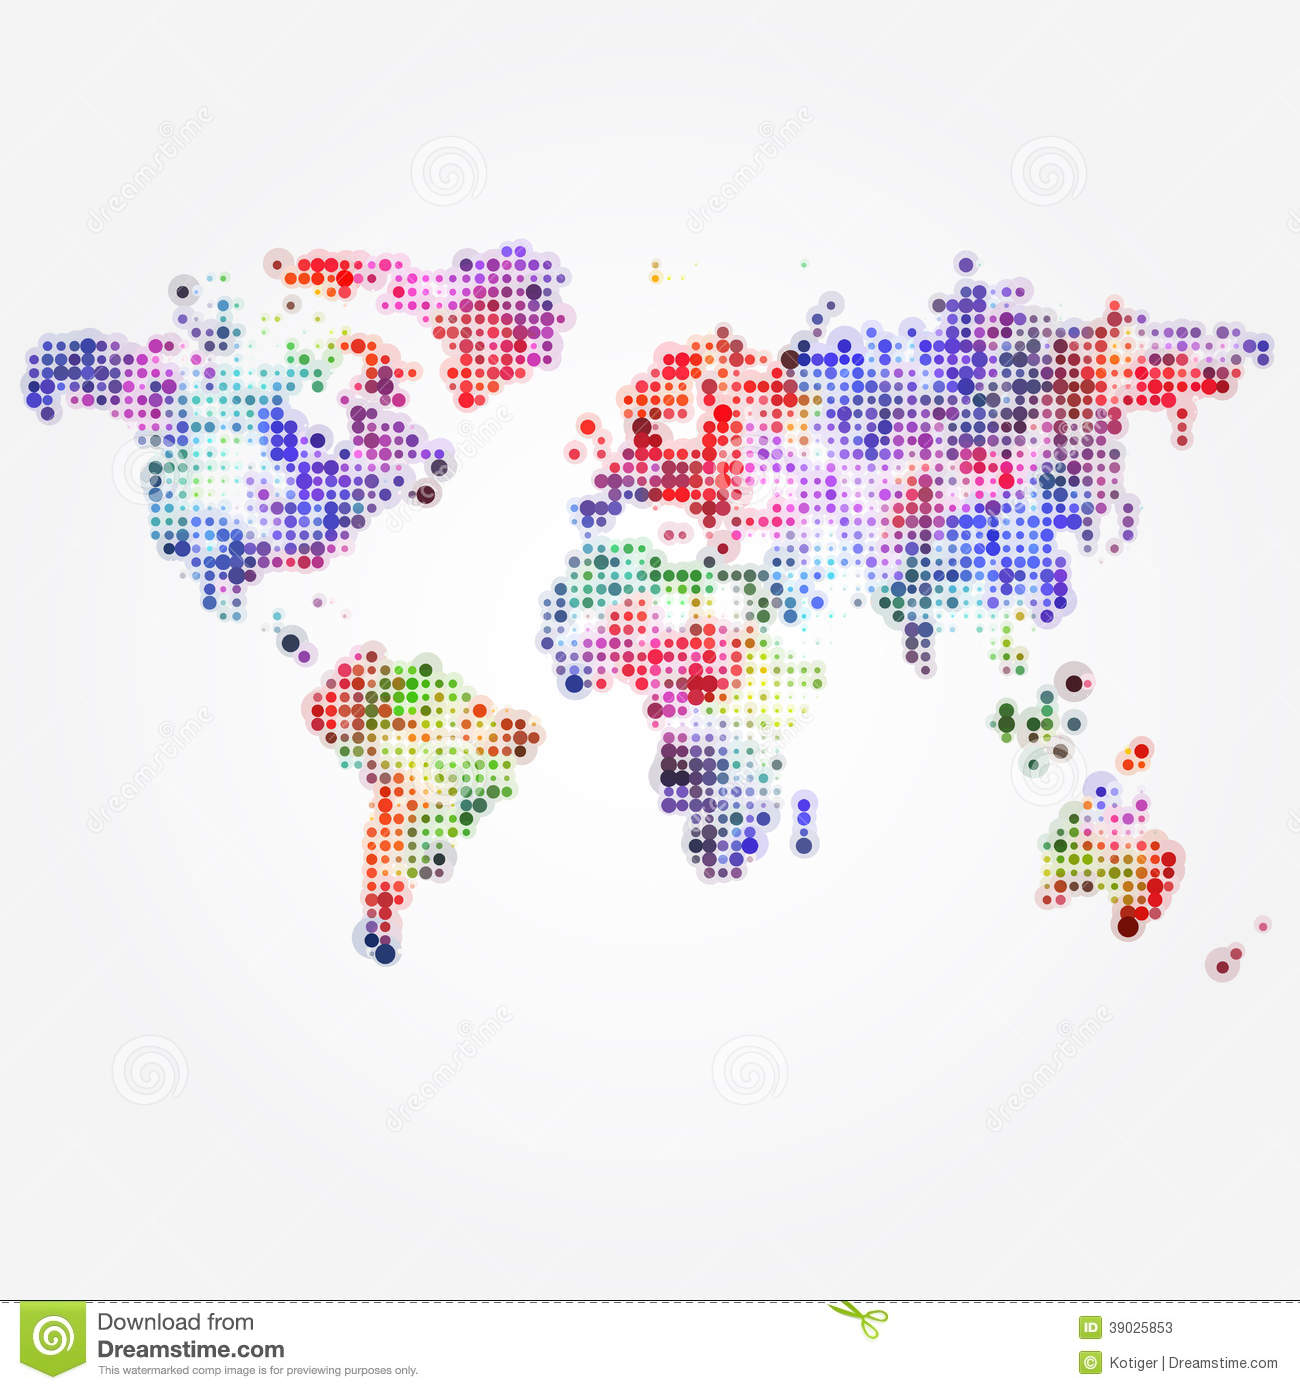 Colorful World Map Poster Colorful World Map Wallpaper 1300x1390